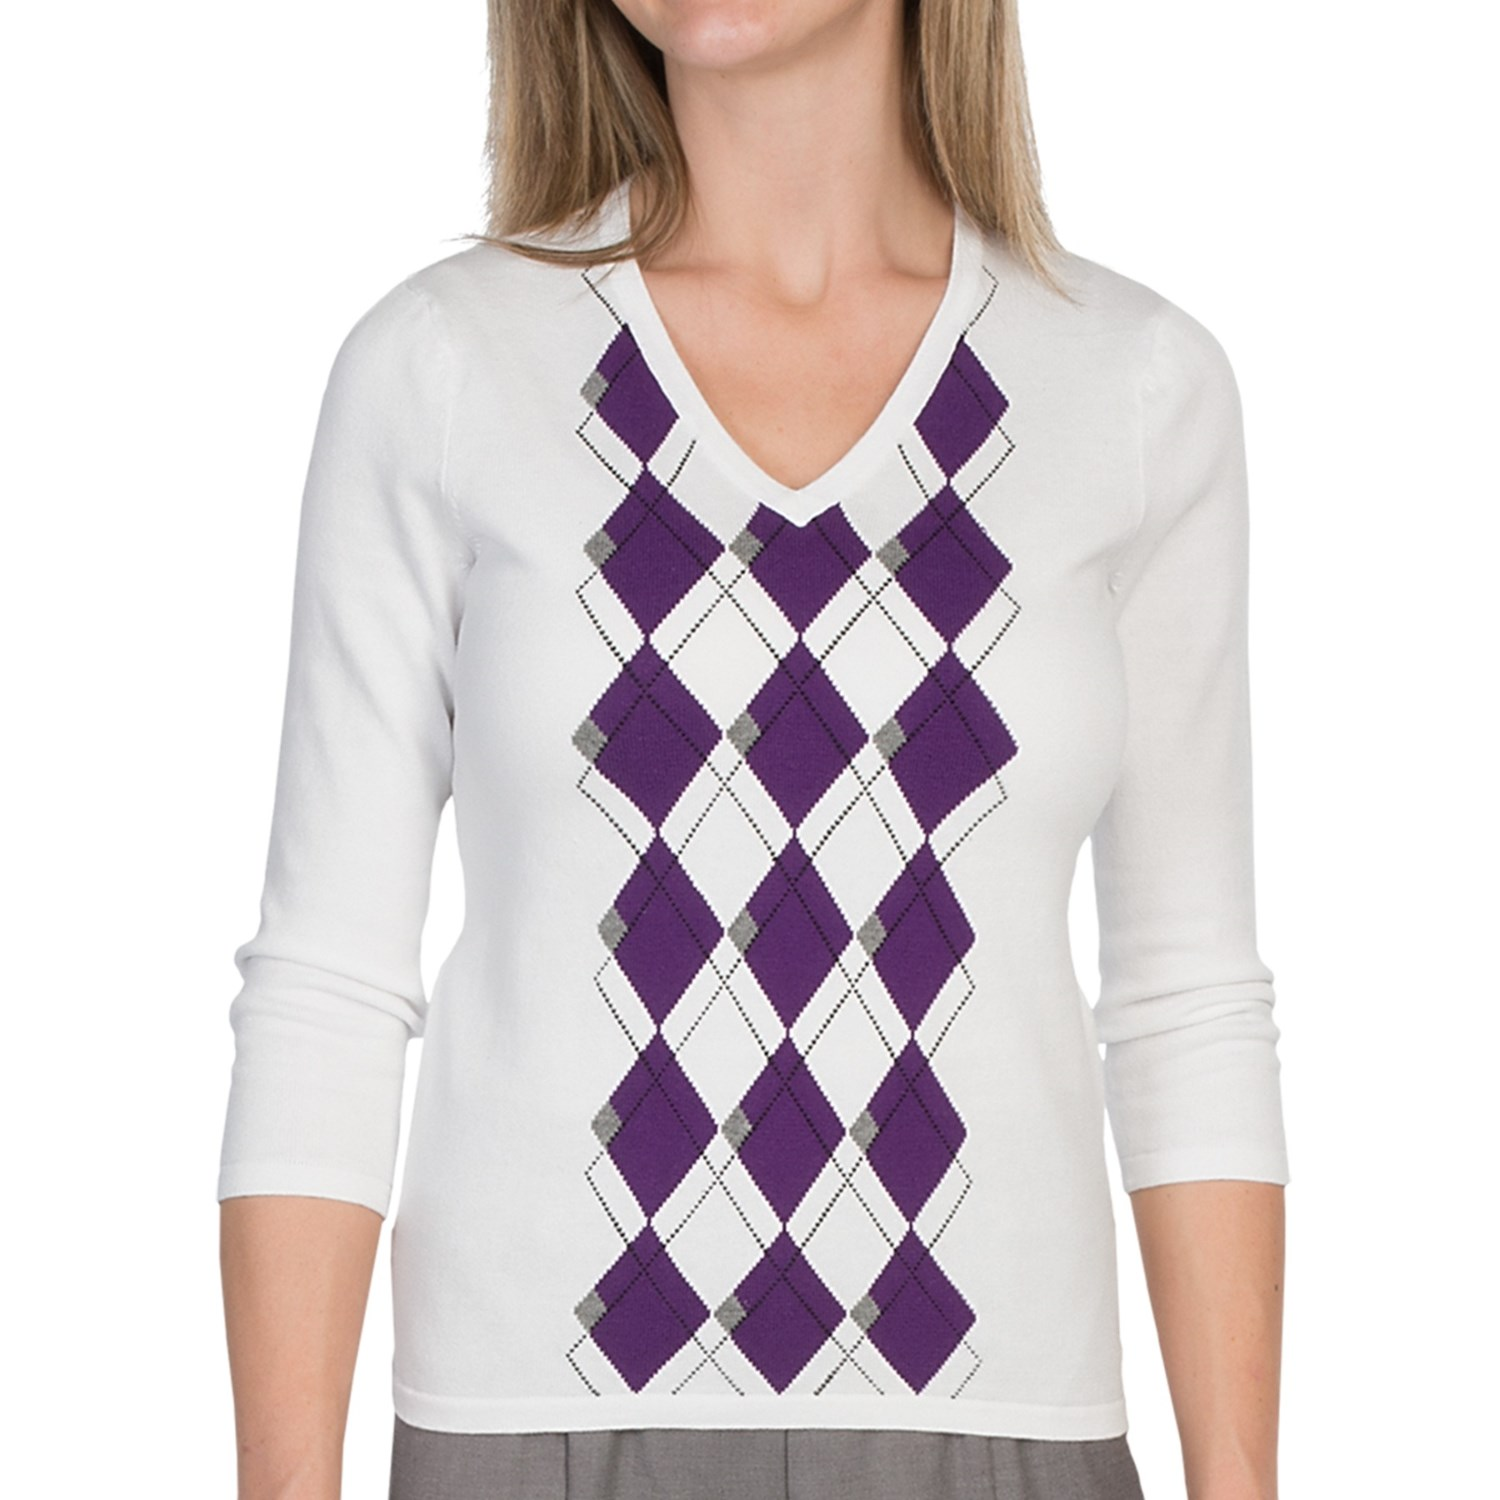 Tommy Hilfiger Womens Knit Argyle Pullover Sweater. Sold by BHFO. $ BCX Juniors Womens Lace-Up Detail Sleeveless Sweater Vest. Sold by BHFO. $ $ 24/7 Comfort Apparel 24seven Comfort Apparel Maternity Faux Fur Embellished Pocket Sweater .